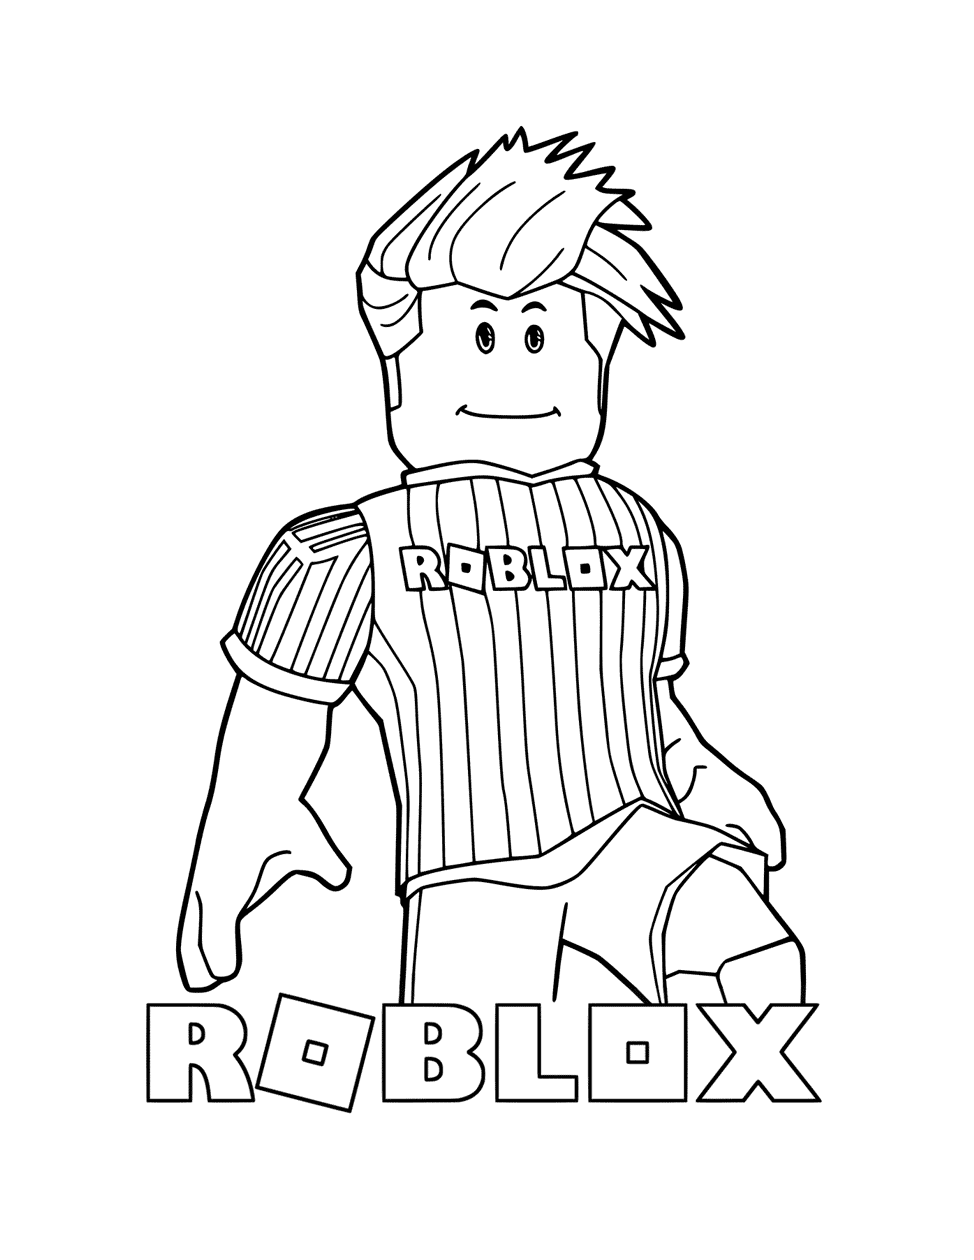 Roblox Soccer Player Coloring Page Coloring Rocks